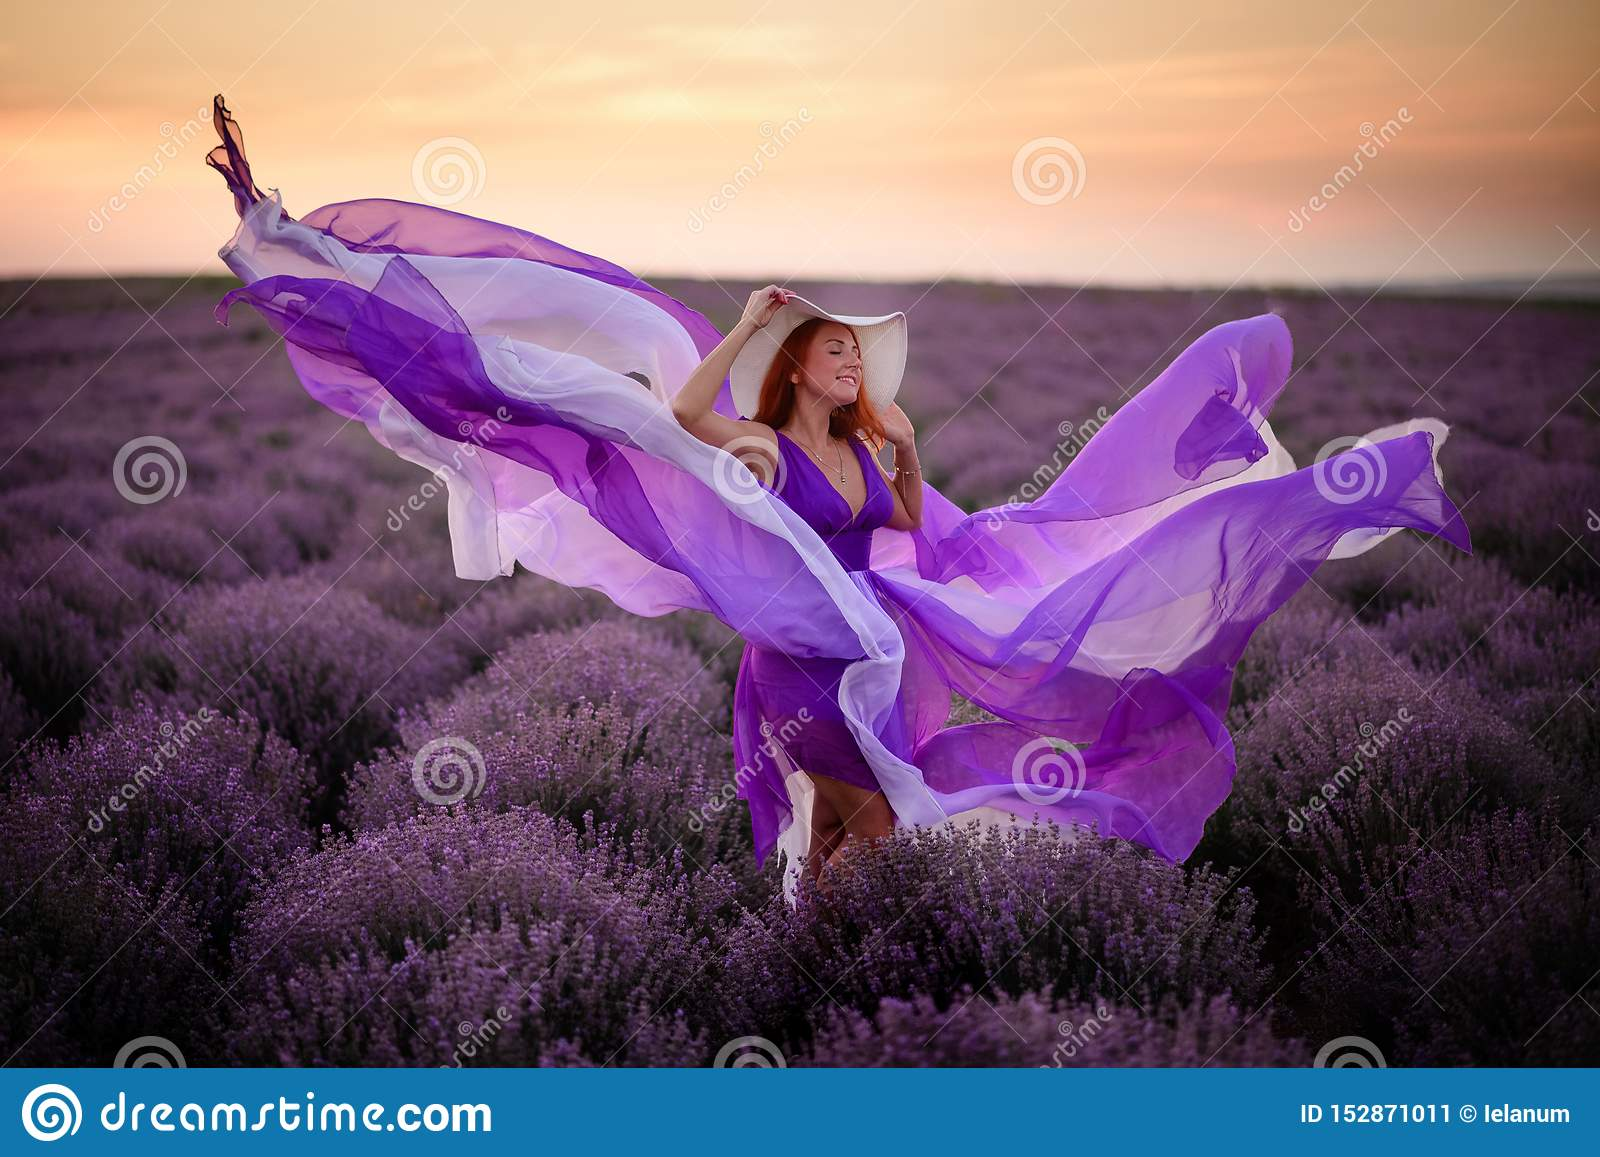 Young happy woman in luxurious purple dress standing in lavender field